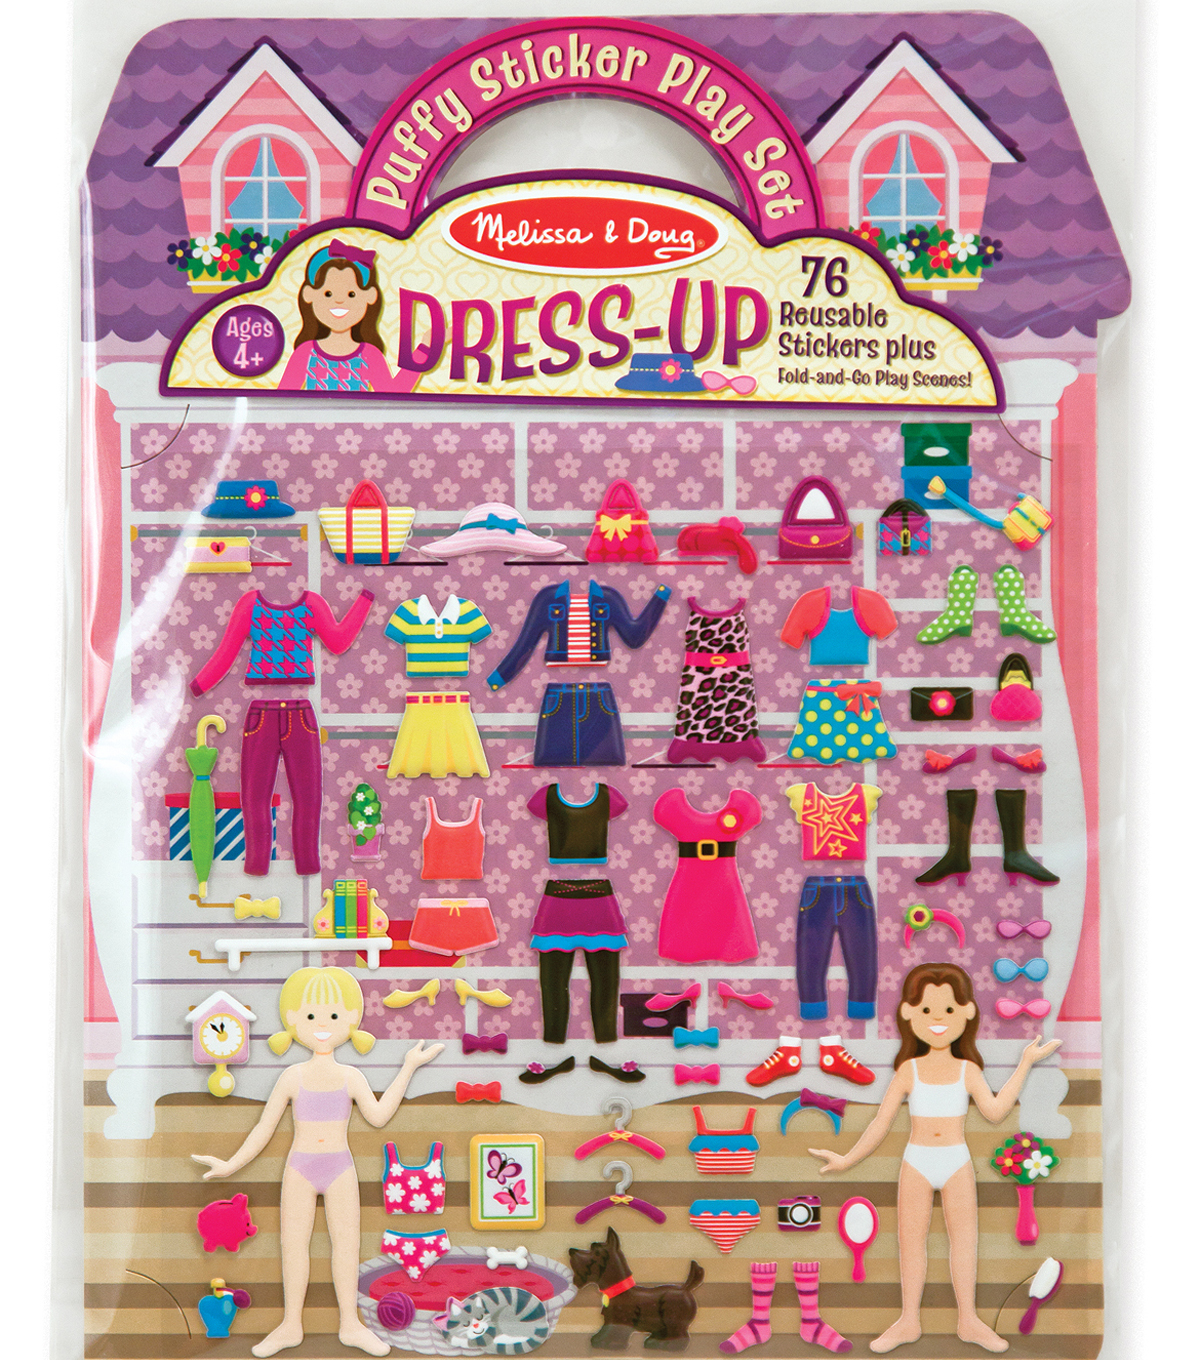 Puffy Sticker Play Set Dress-up